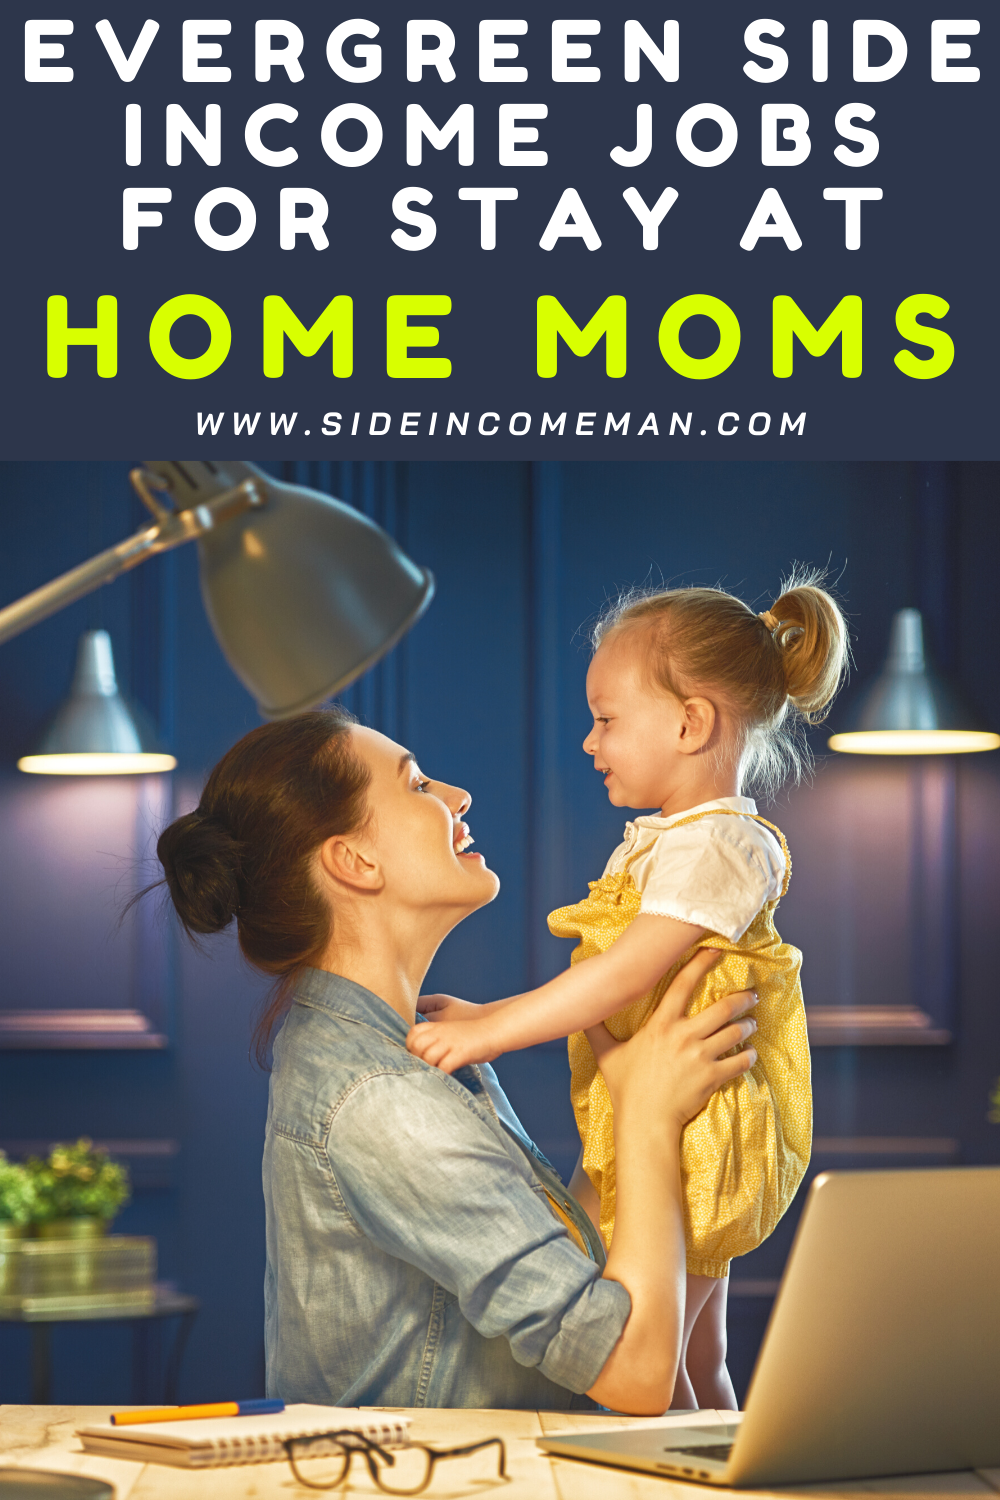 5 Evergreen Side Income Jobs Stay At Home Moms Can Start Today!